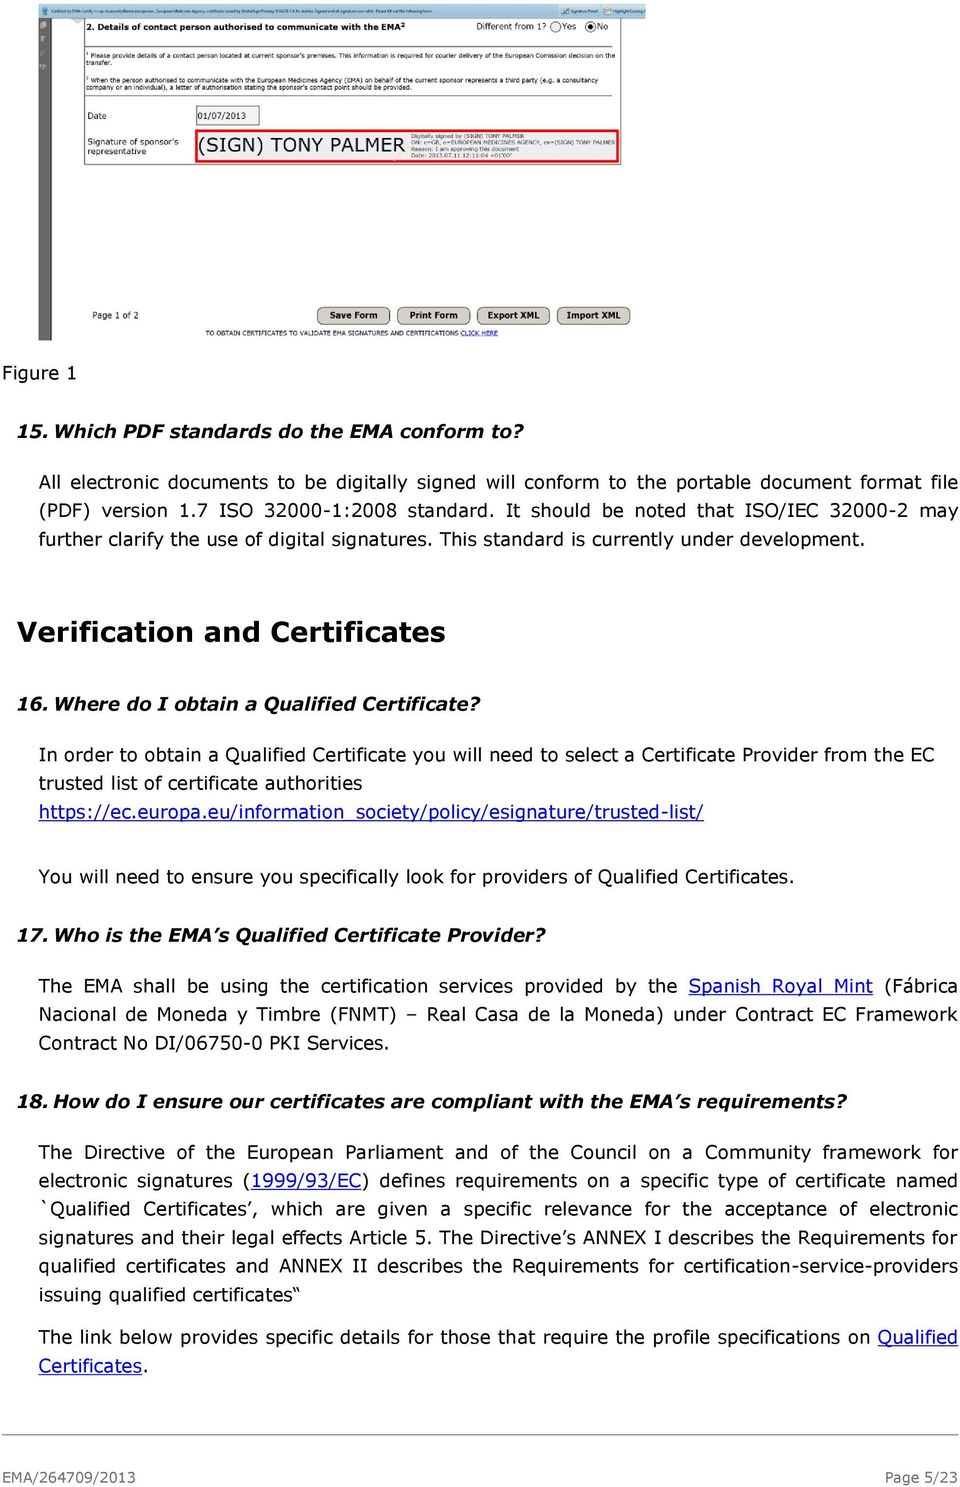 Where do I obtain a Qualified Certificate? In order to obtain a Qualified Certificate you will need to select a Certificate Provider from the EC trusted list of certificate authorities https://ec.